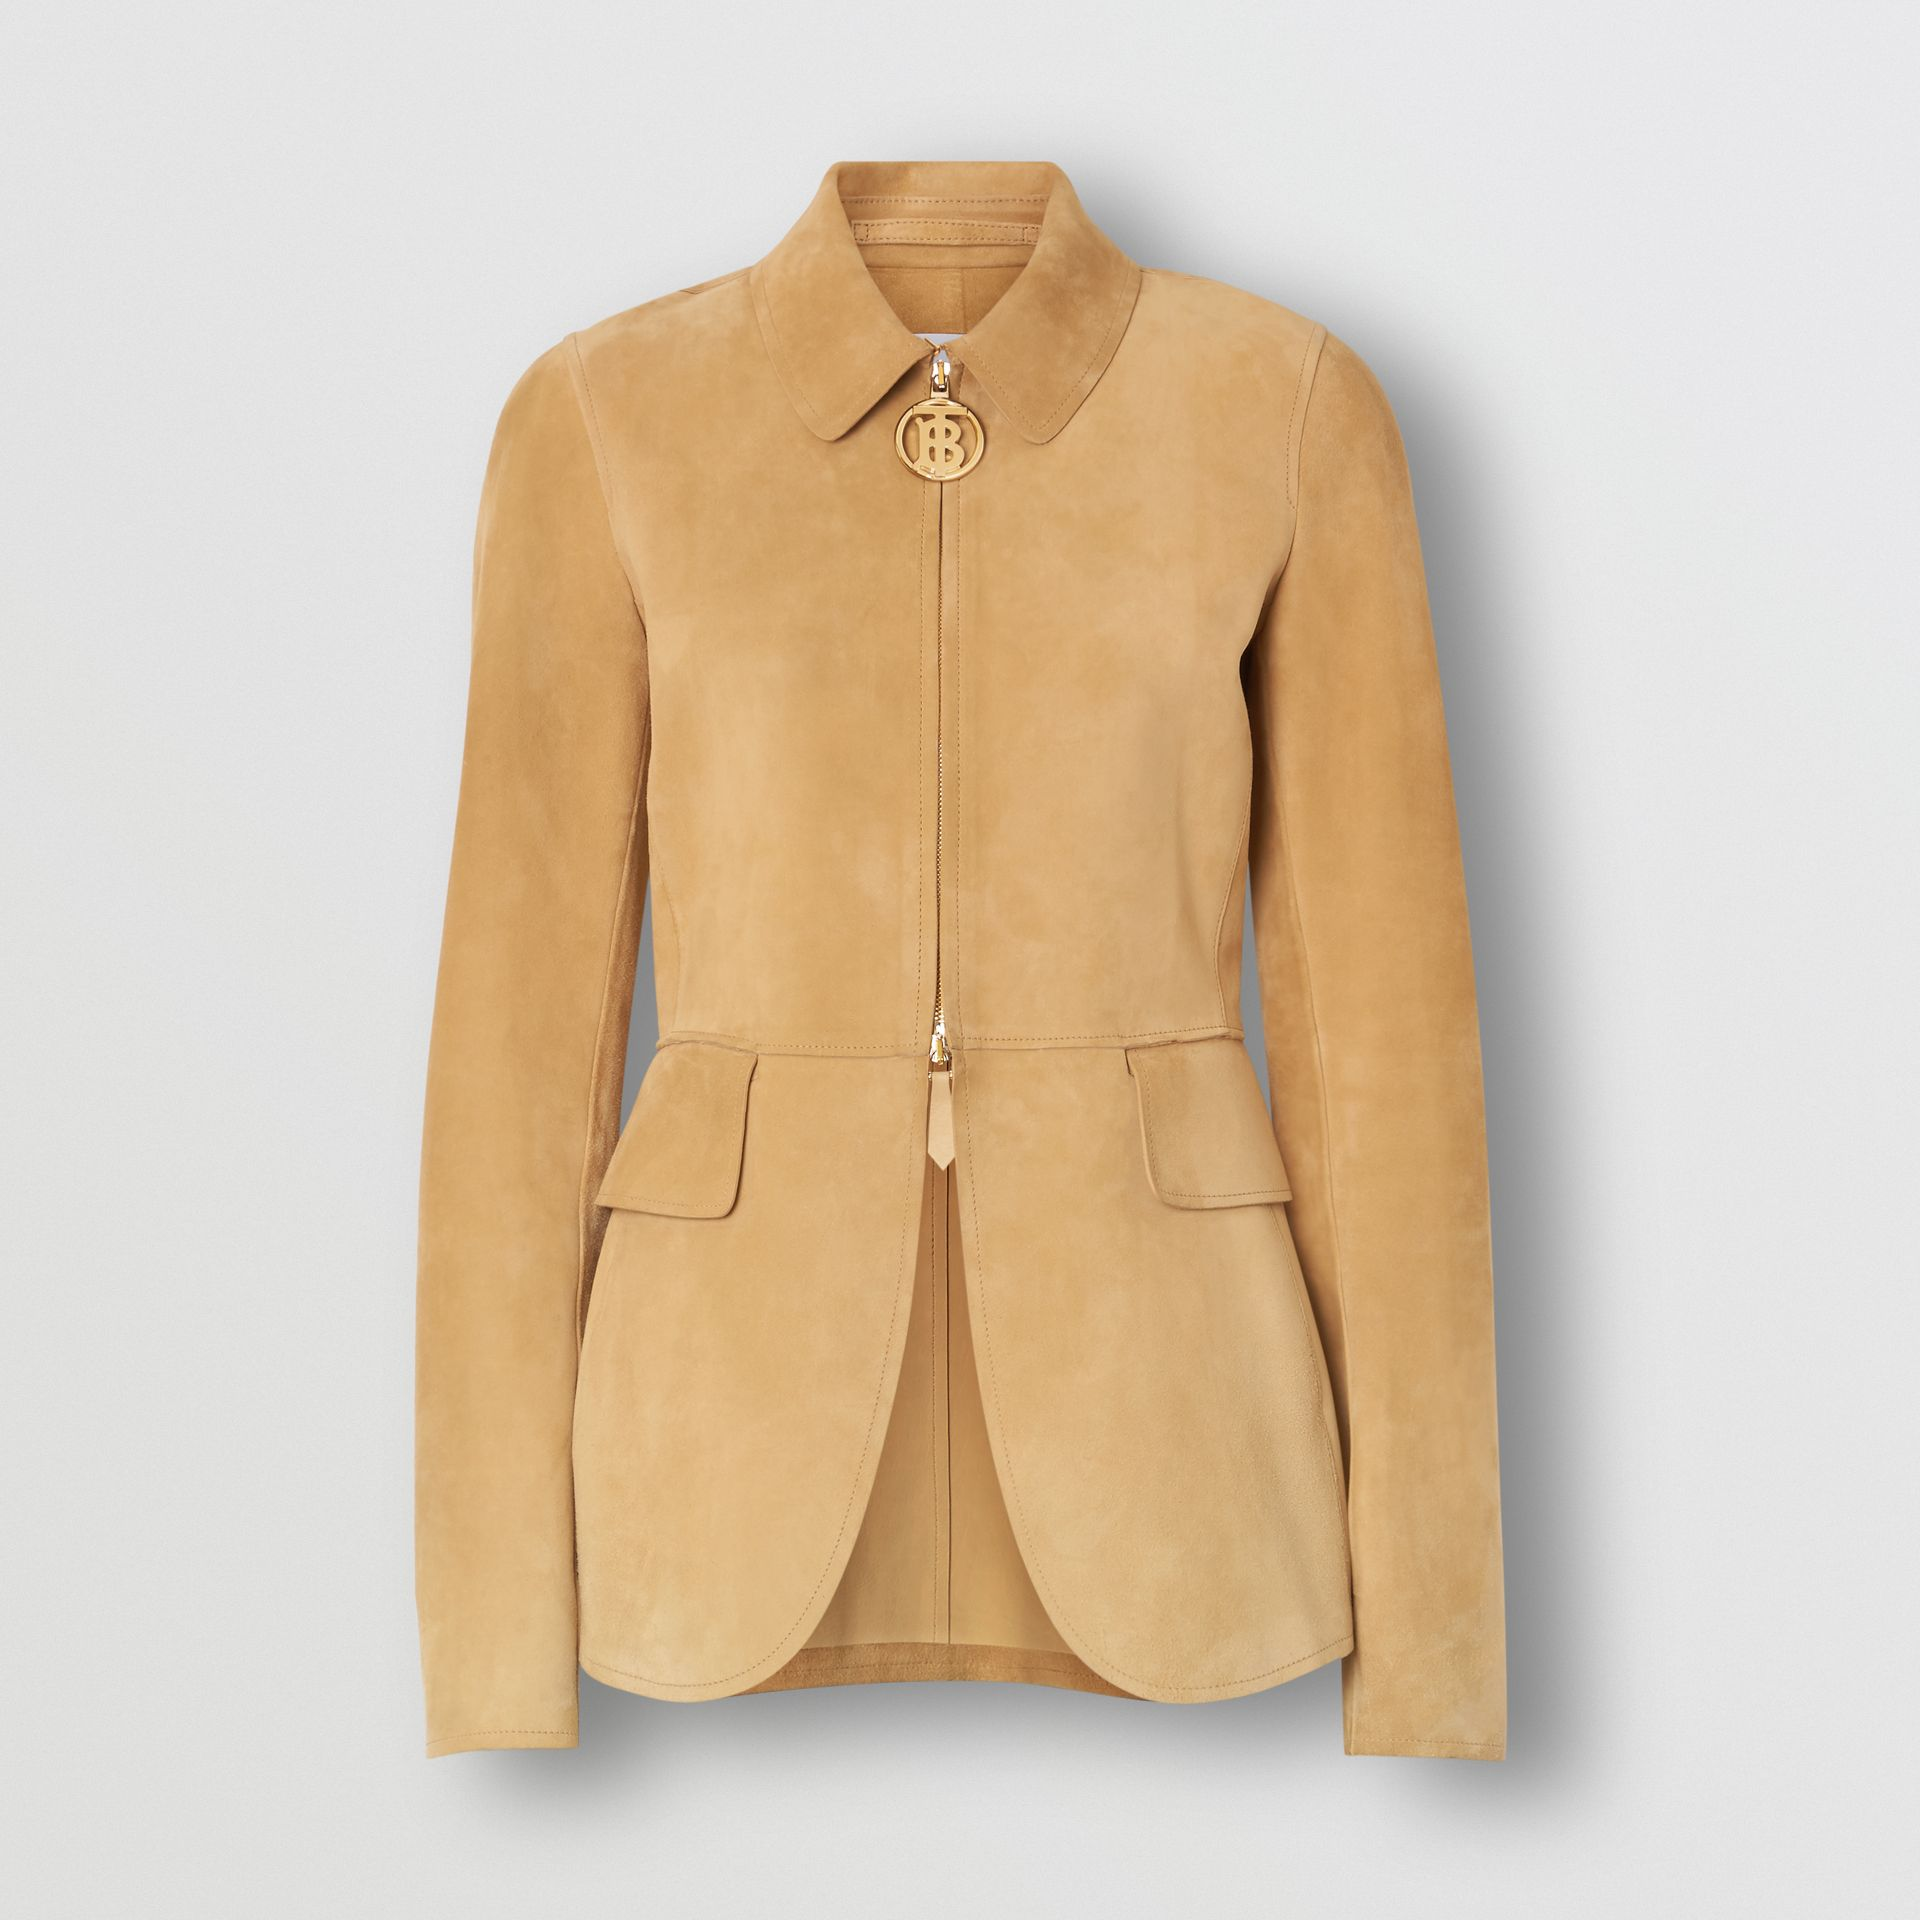 Monogram Motif Suede Riding Jacket in Sand - Women | Burberry - gallery image 2